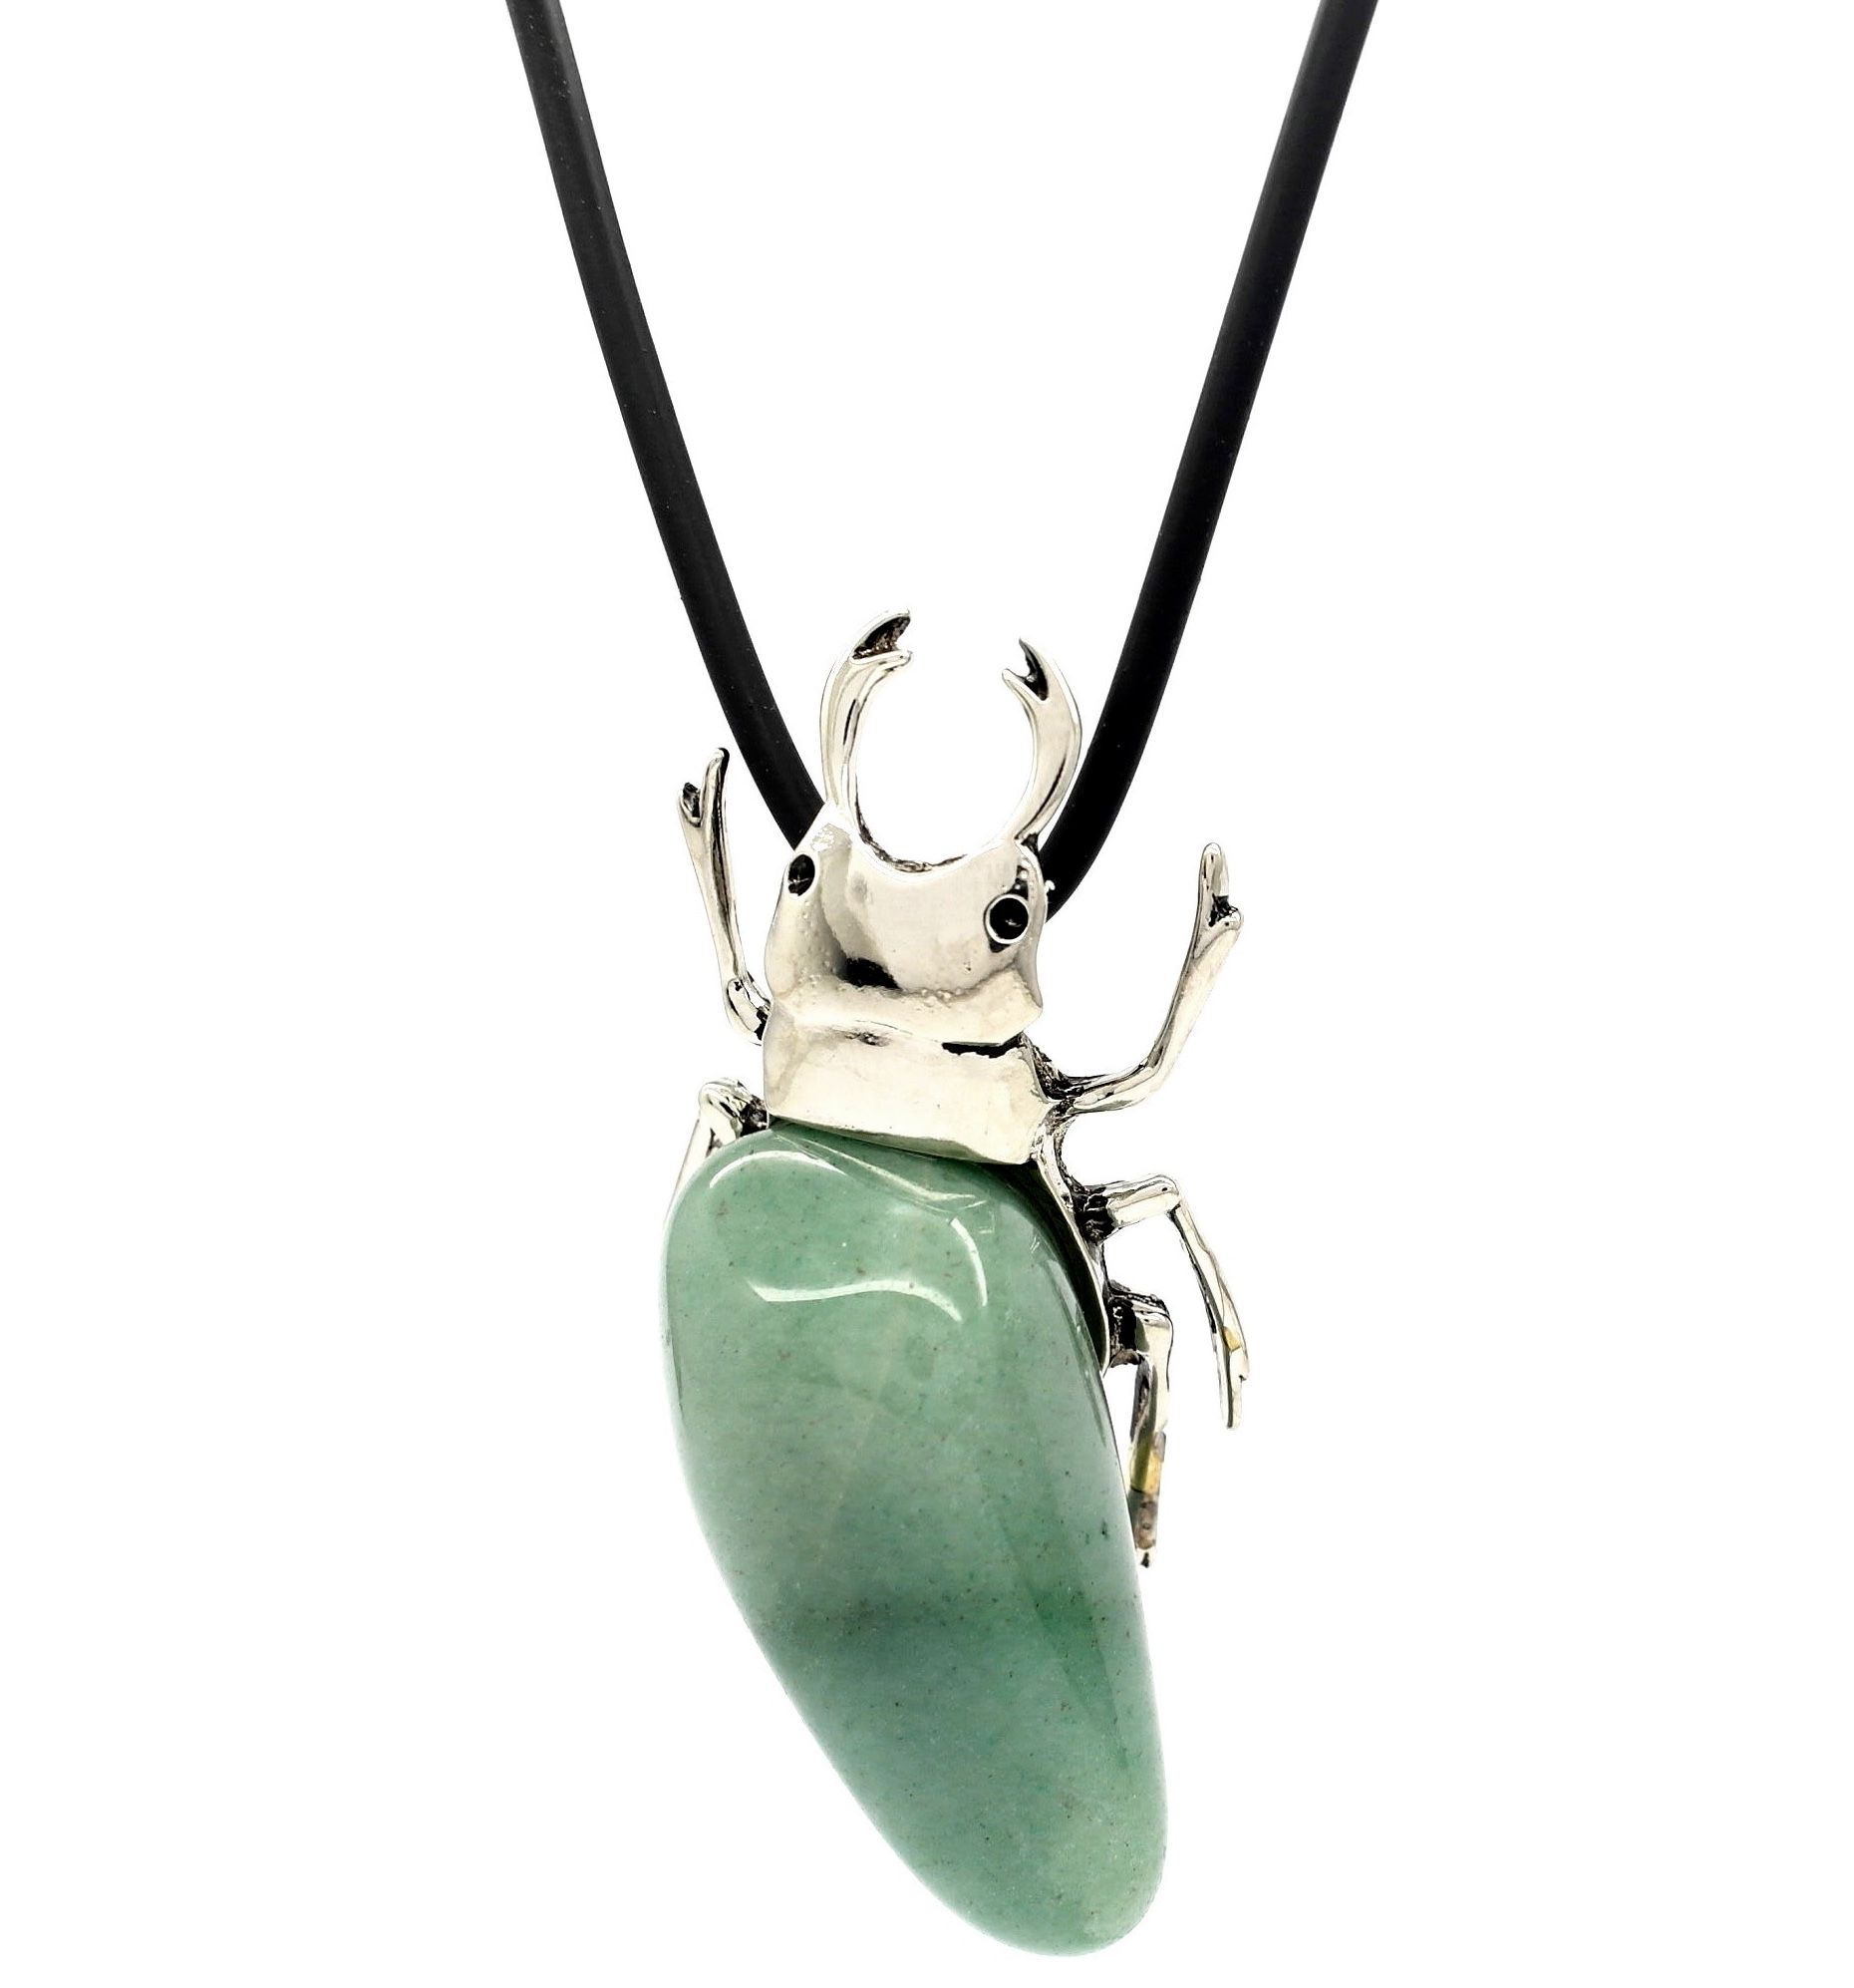 Egyptian scarab beetle pewter aventurine stone pendant necklace egyptian scarab beetle pewter aventurine stone pendant necklace unique statement jewellery large aloadofball Choice Image